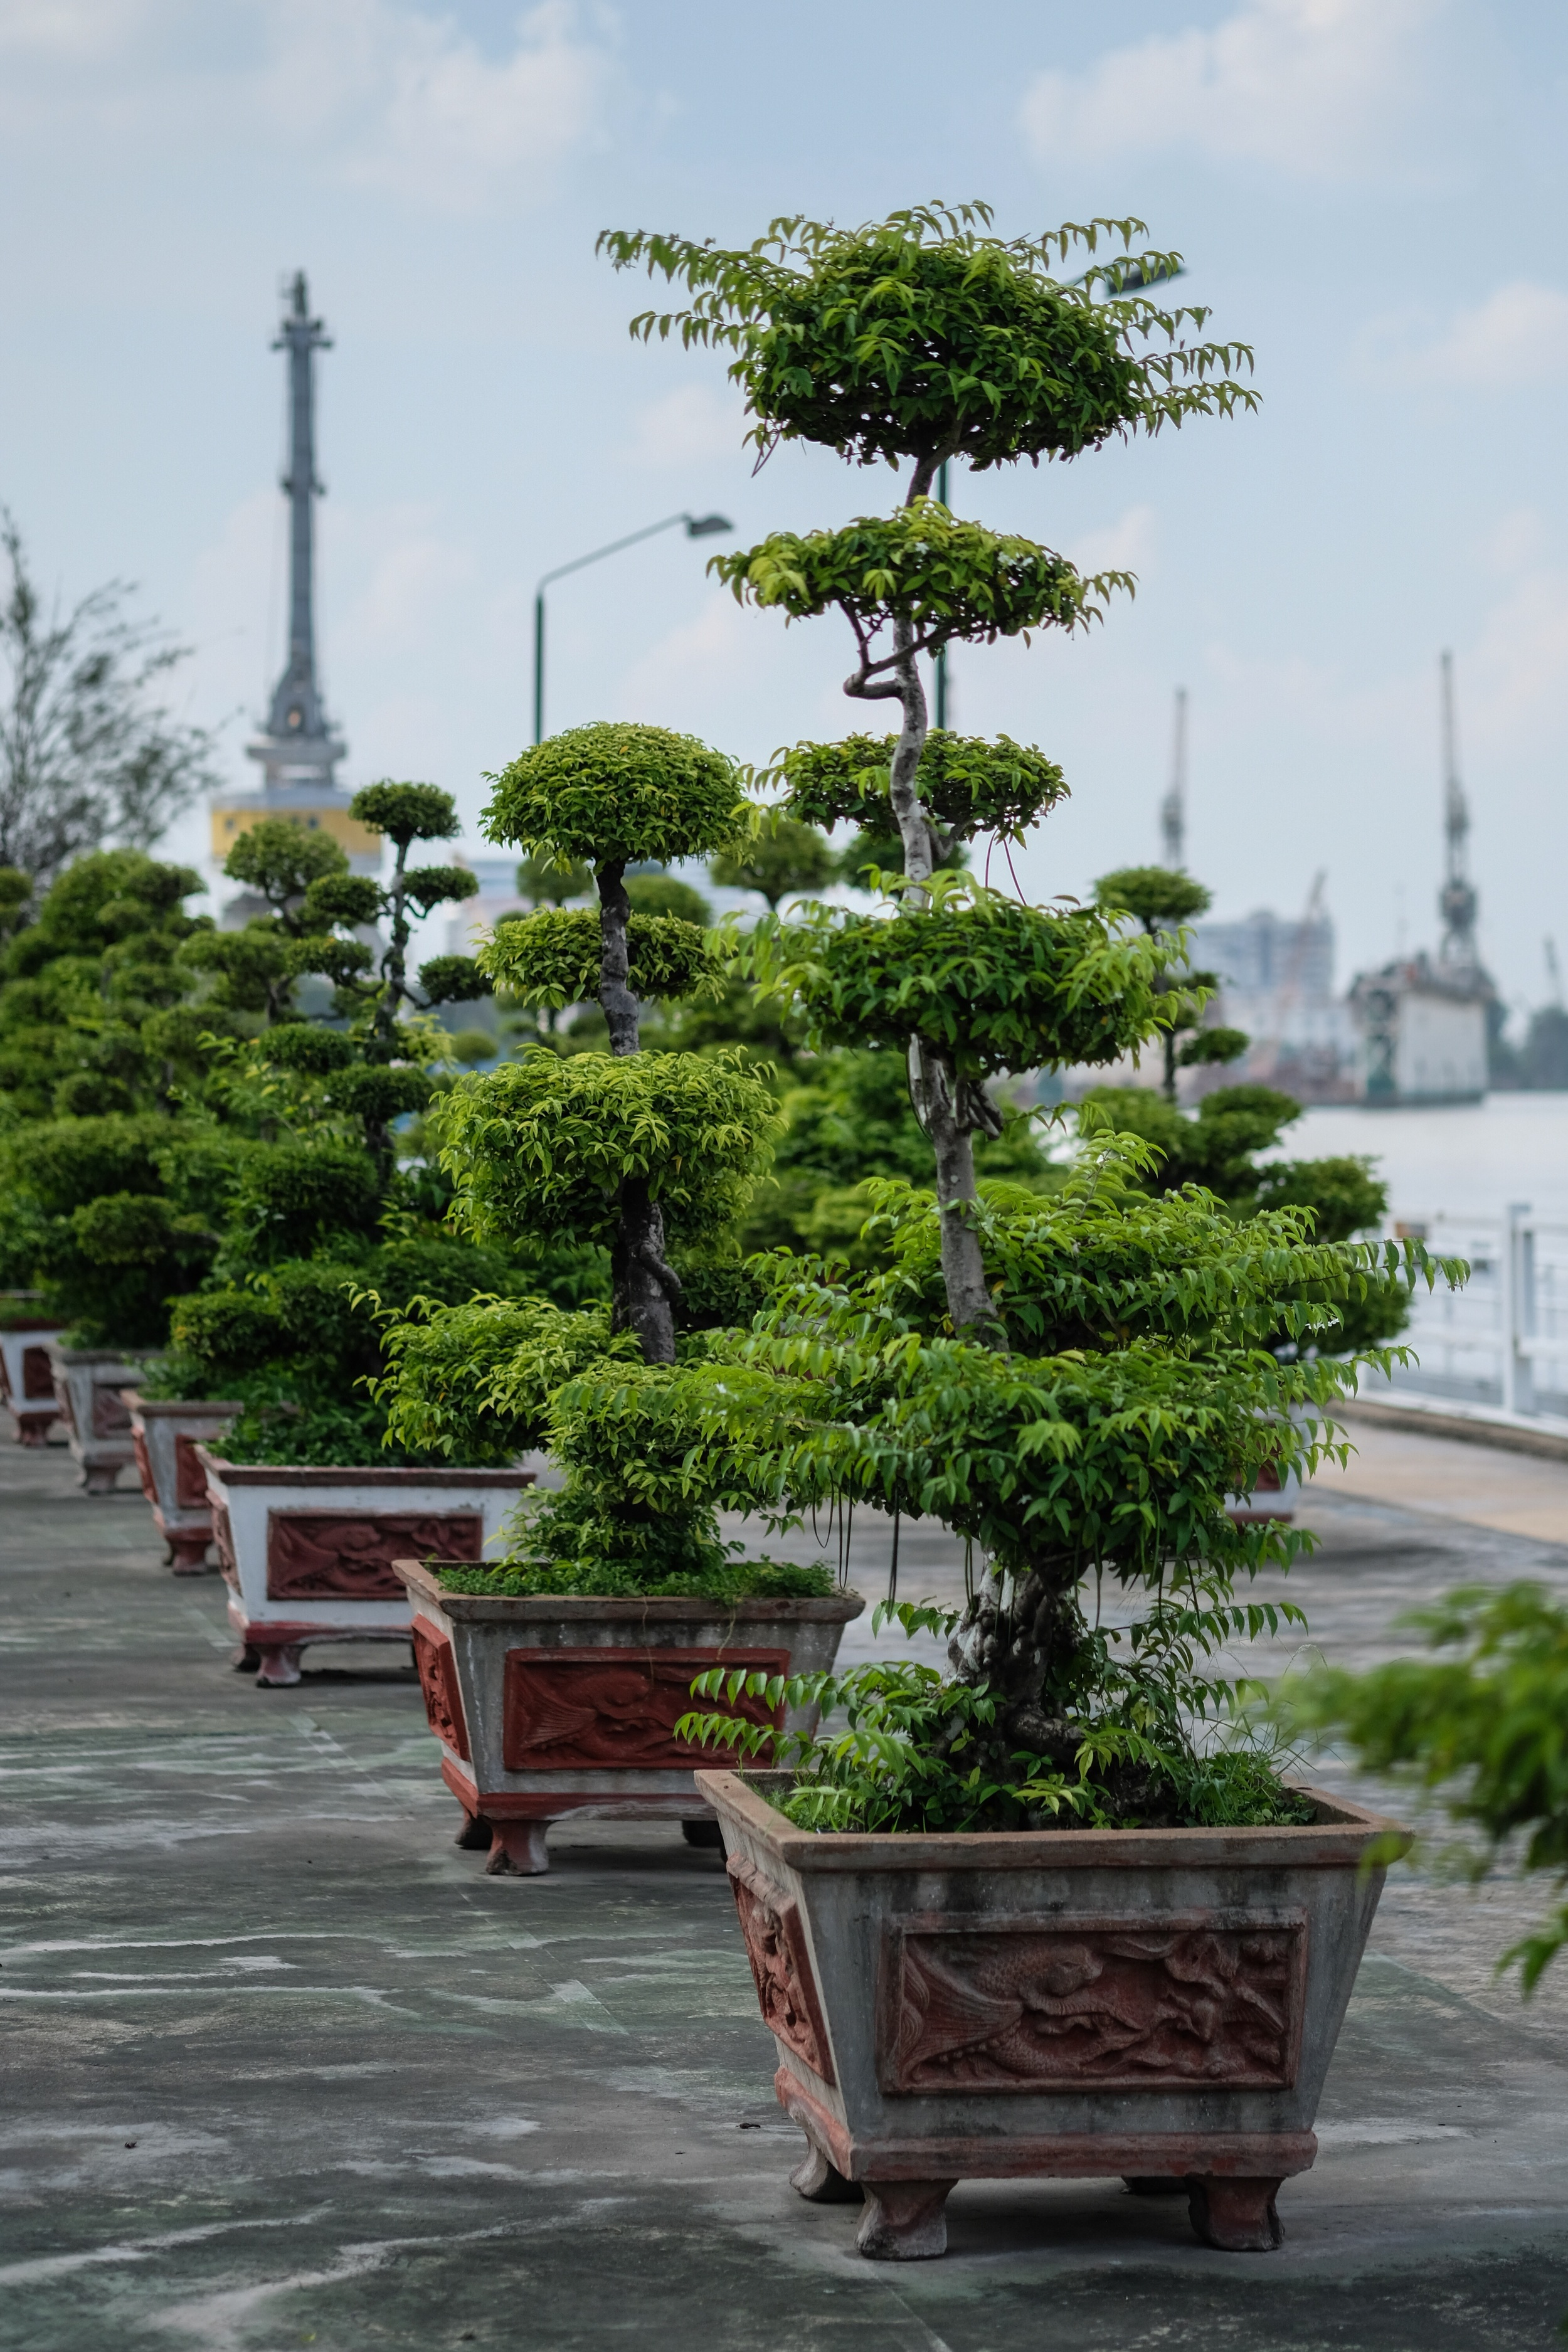 Potted trees along the Saigon River.  The whole city is very lush, with parks and planted trees.